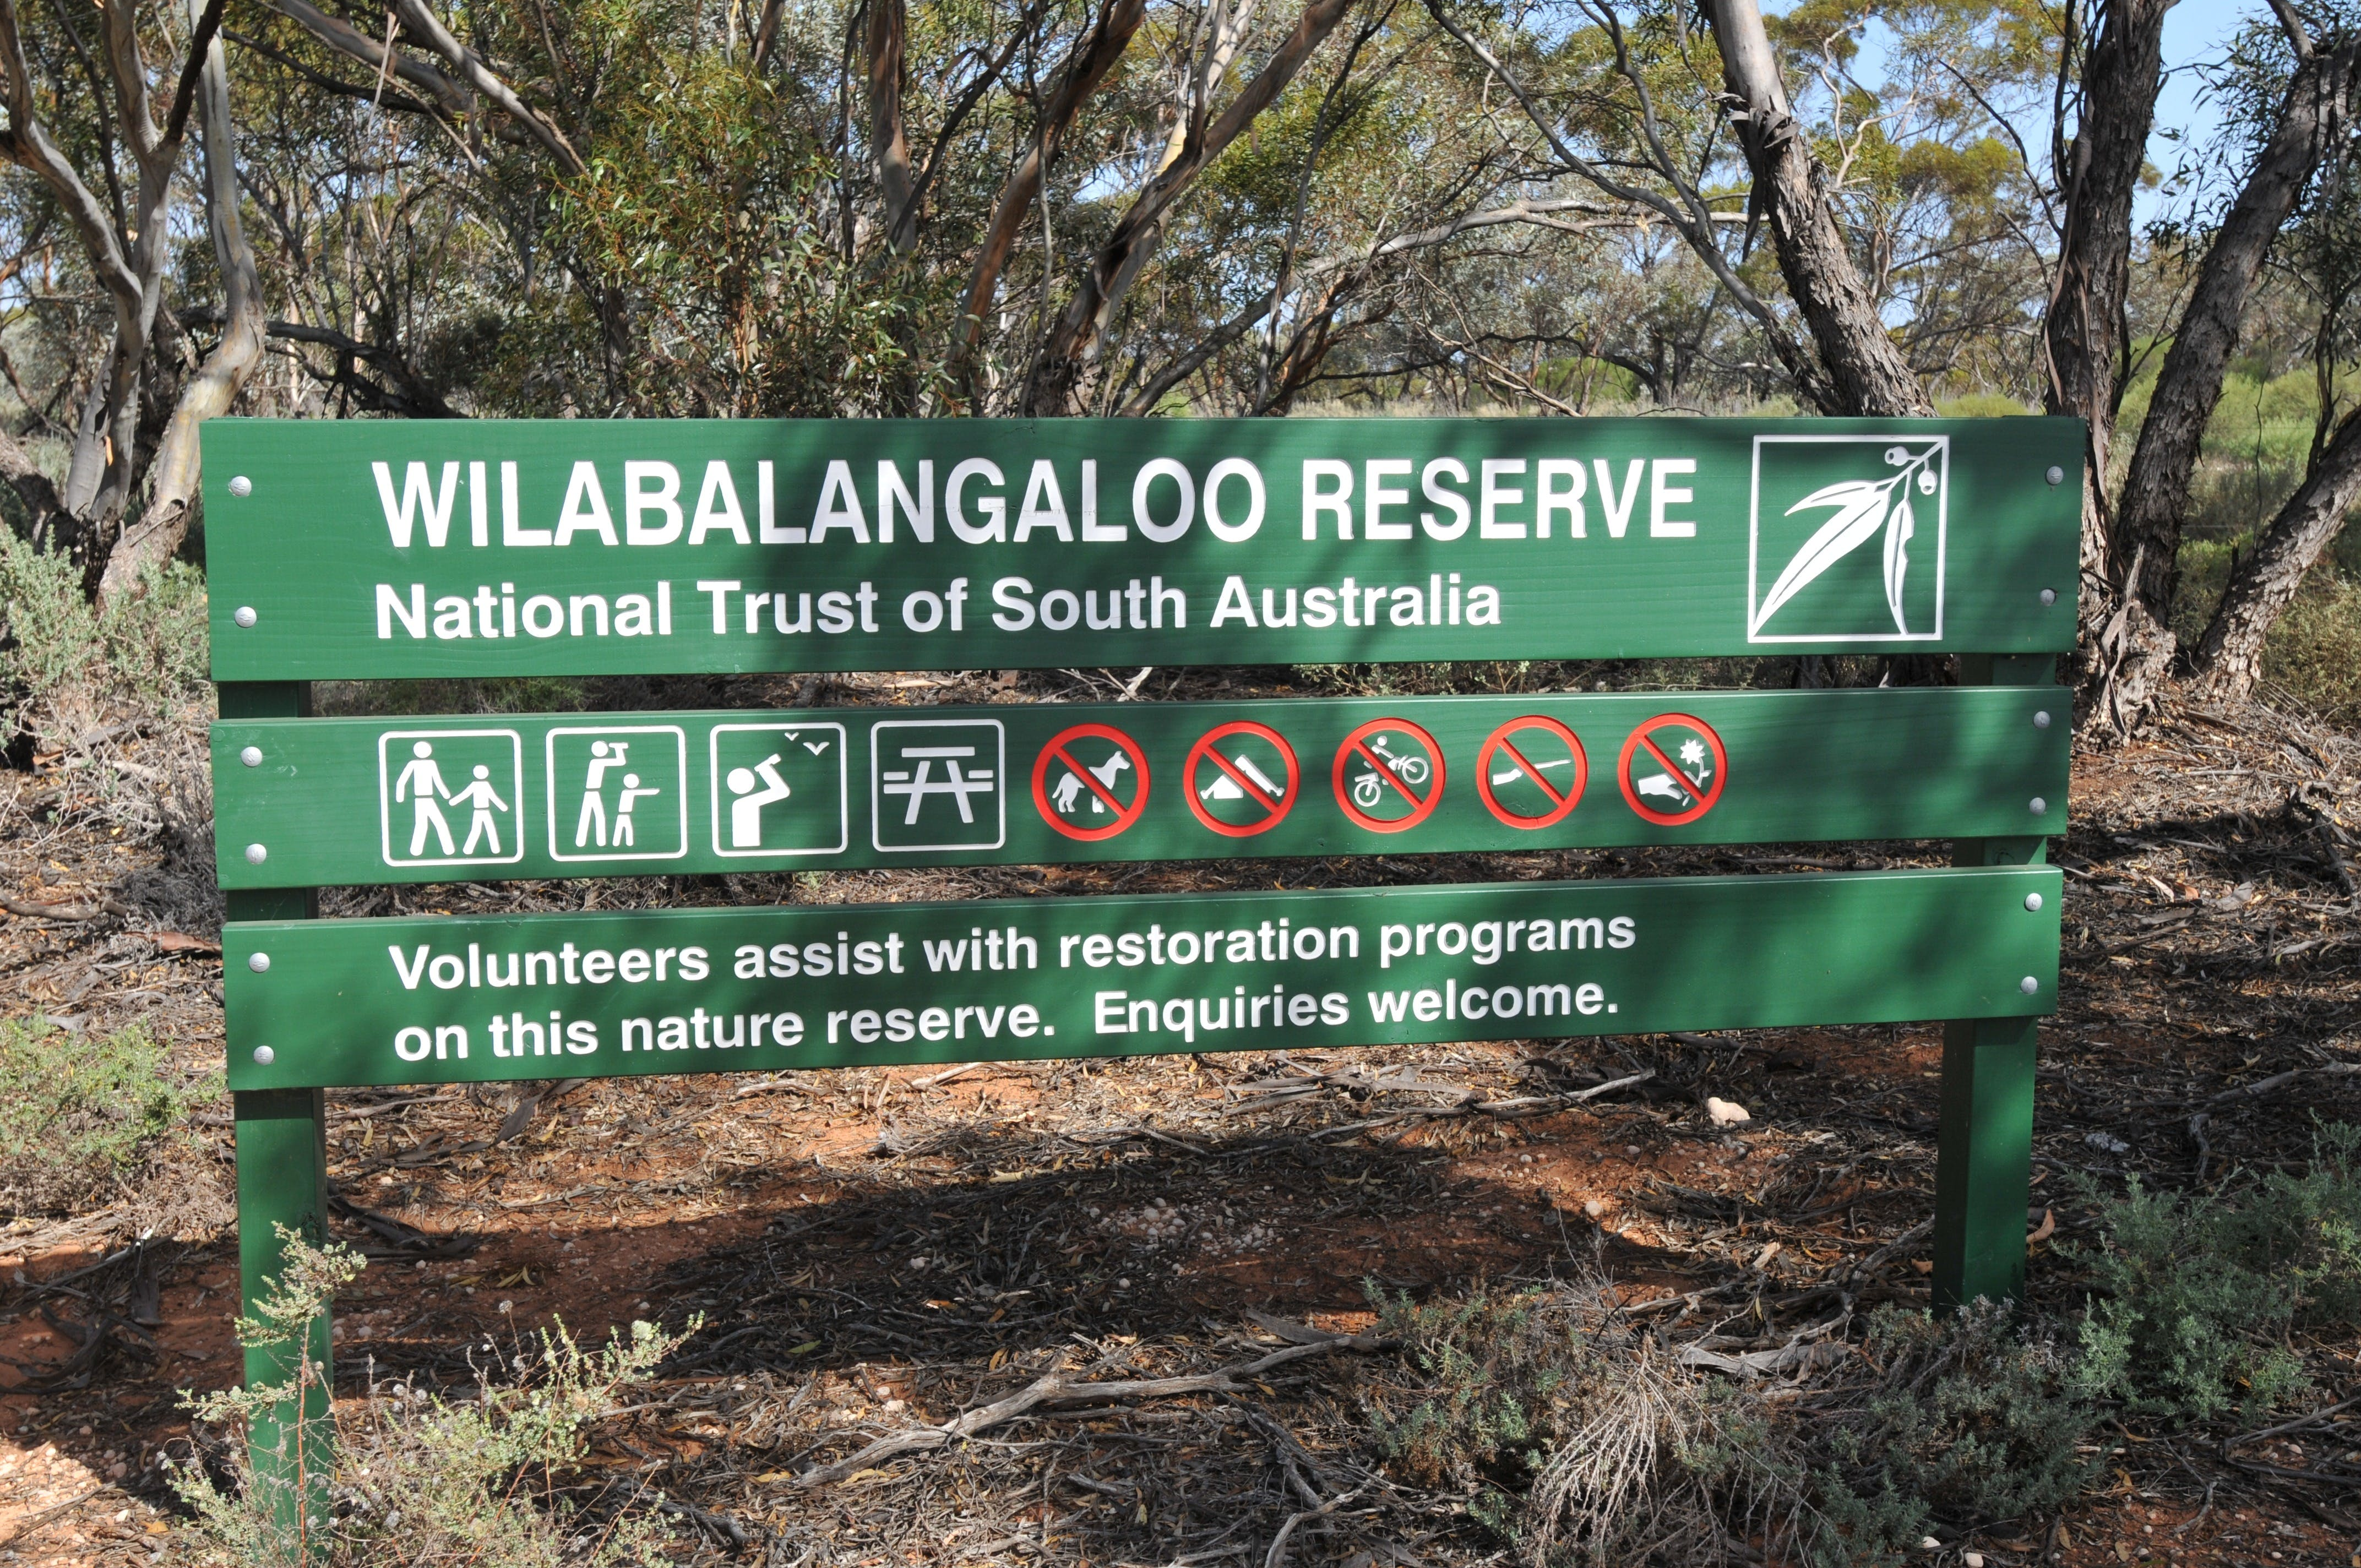 Wilabalangaloo Reserve - Australia Accommodation